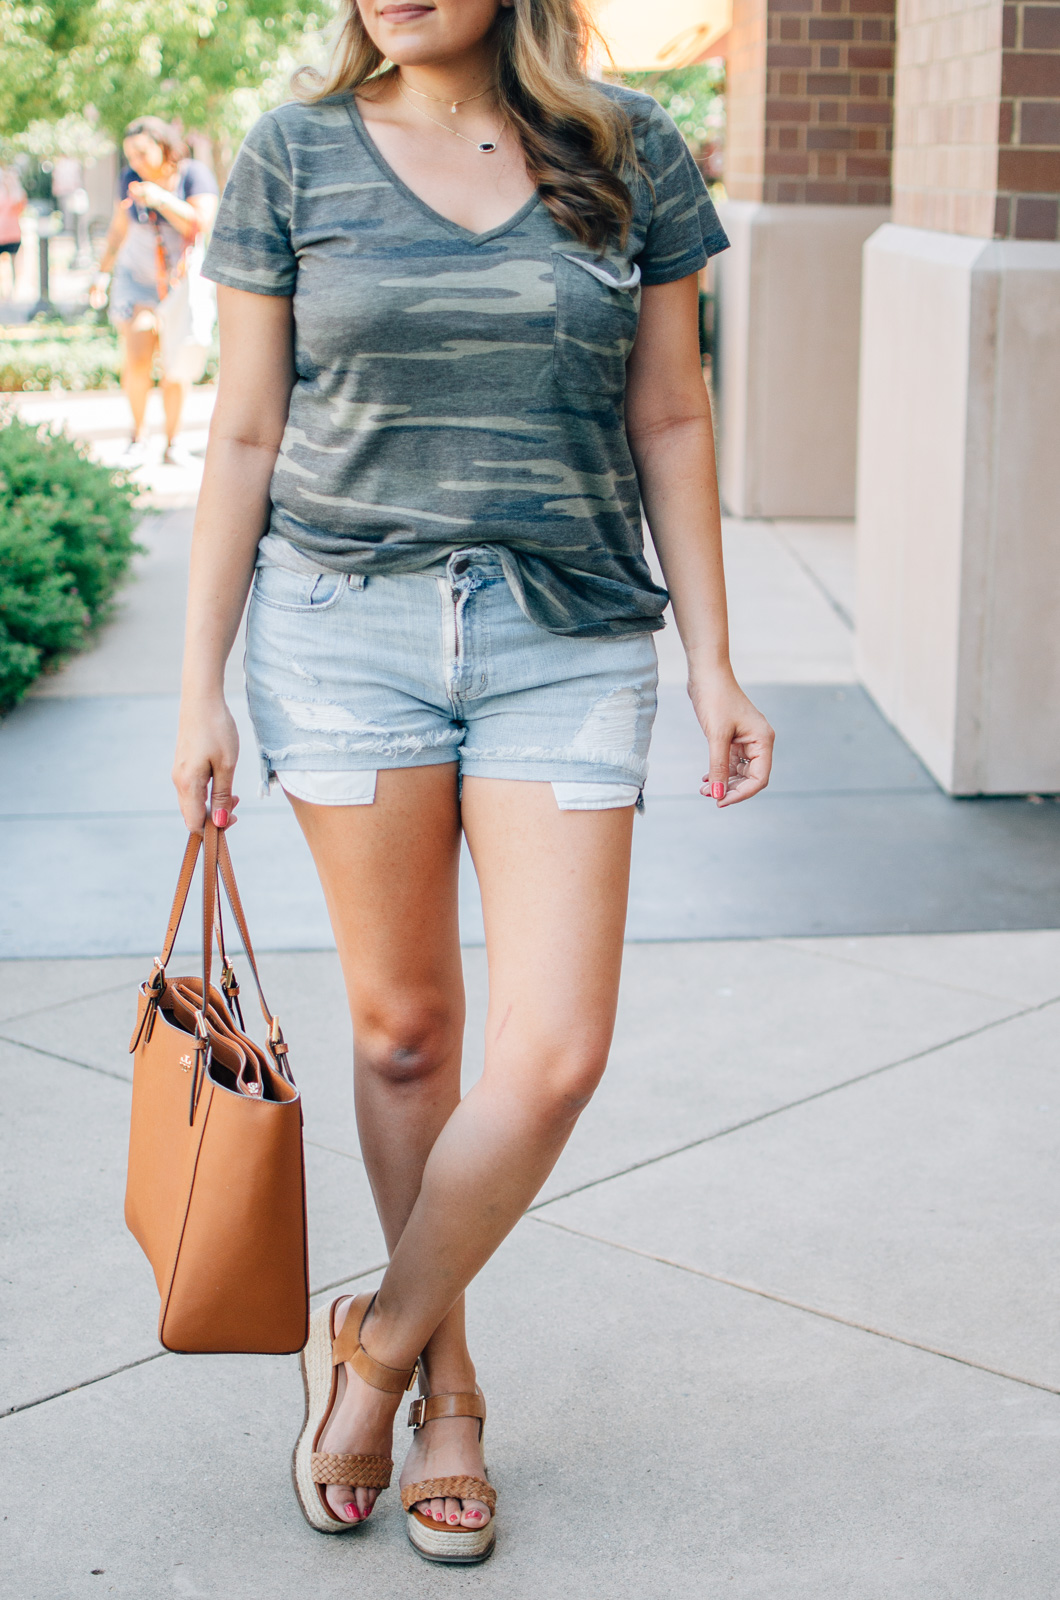 cute summer outfit - denim cutoffs outfit | For more summer style ideas, head to bylaurenm.com!